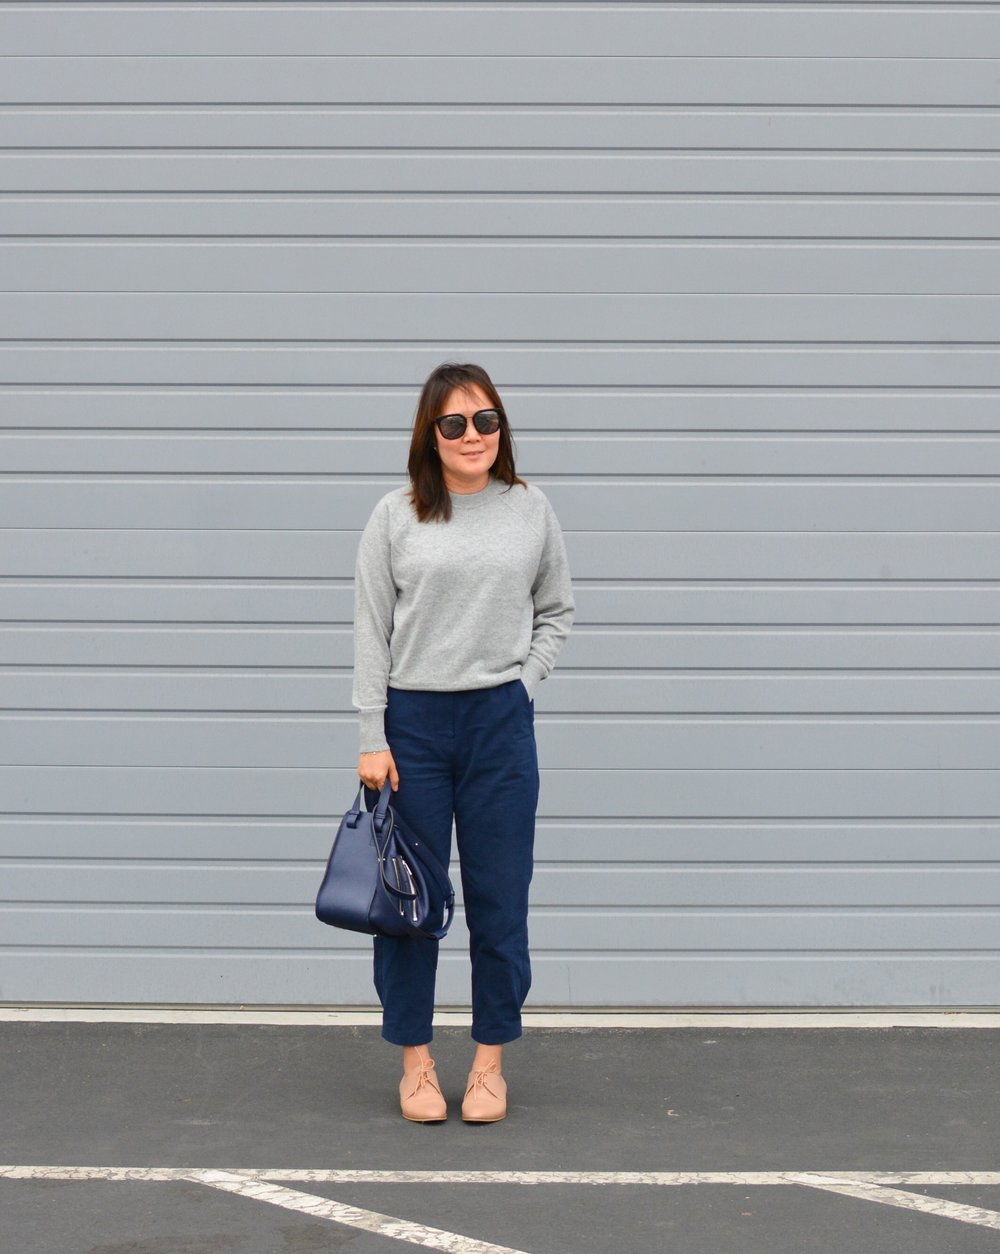 Everlane Review The Cashmere Sweatshirt (2 of 3)-min.jpg